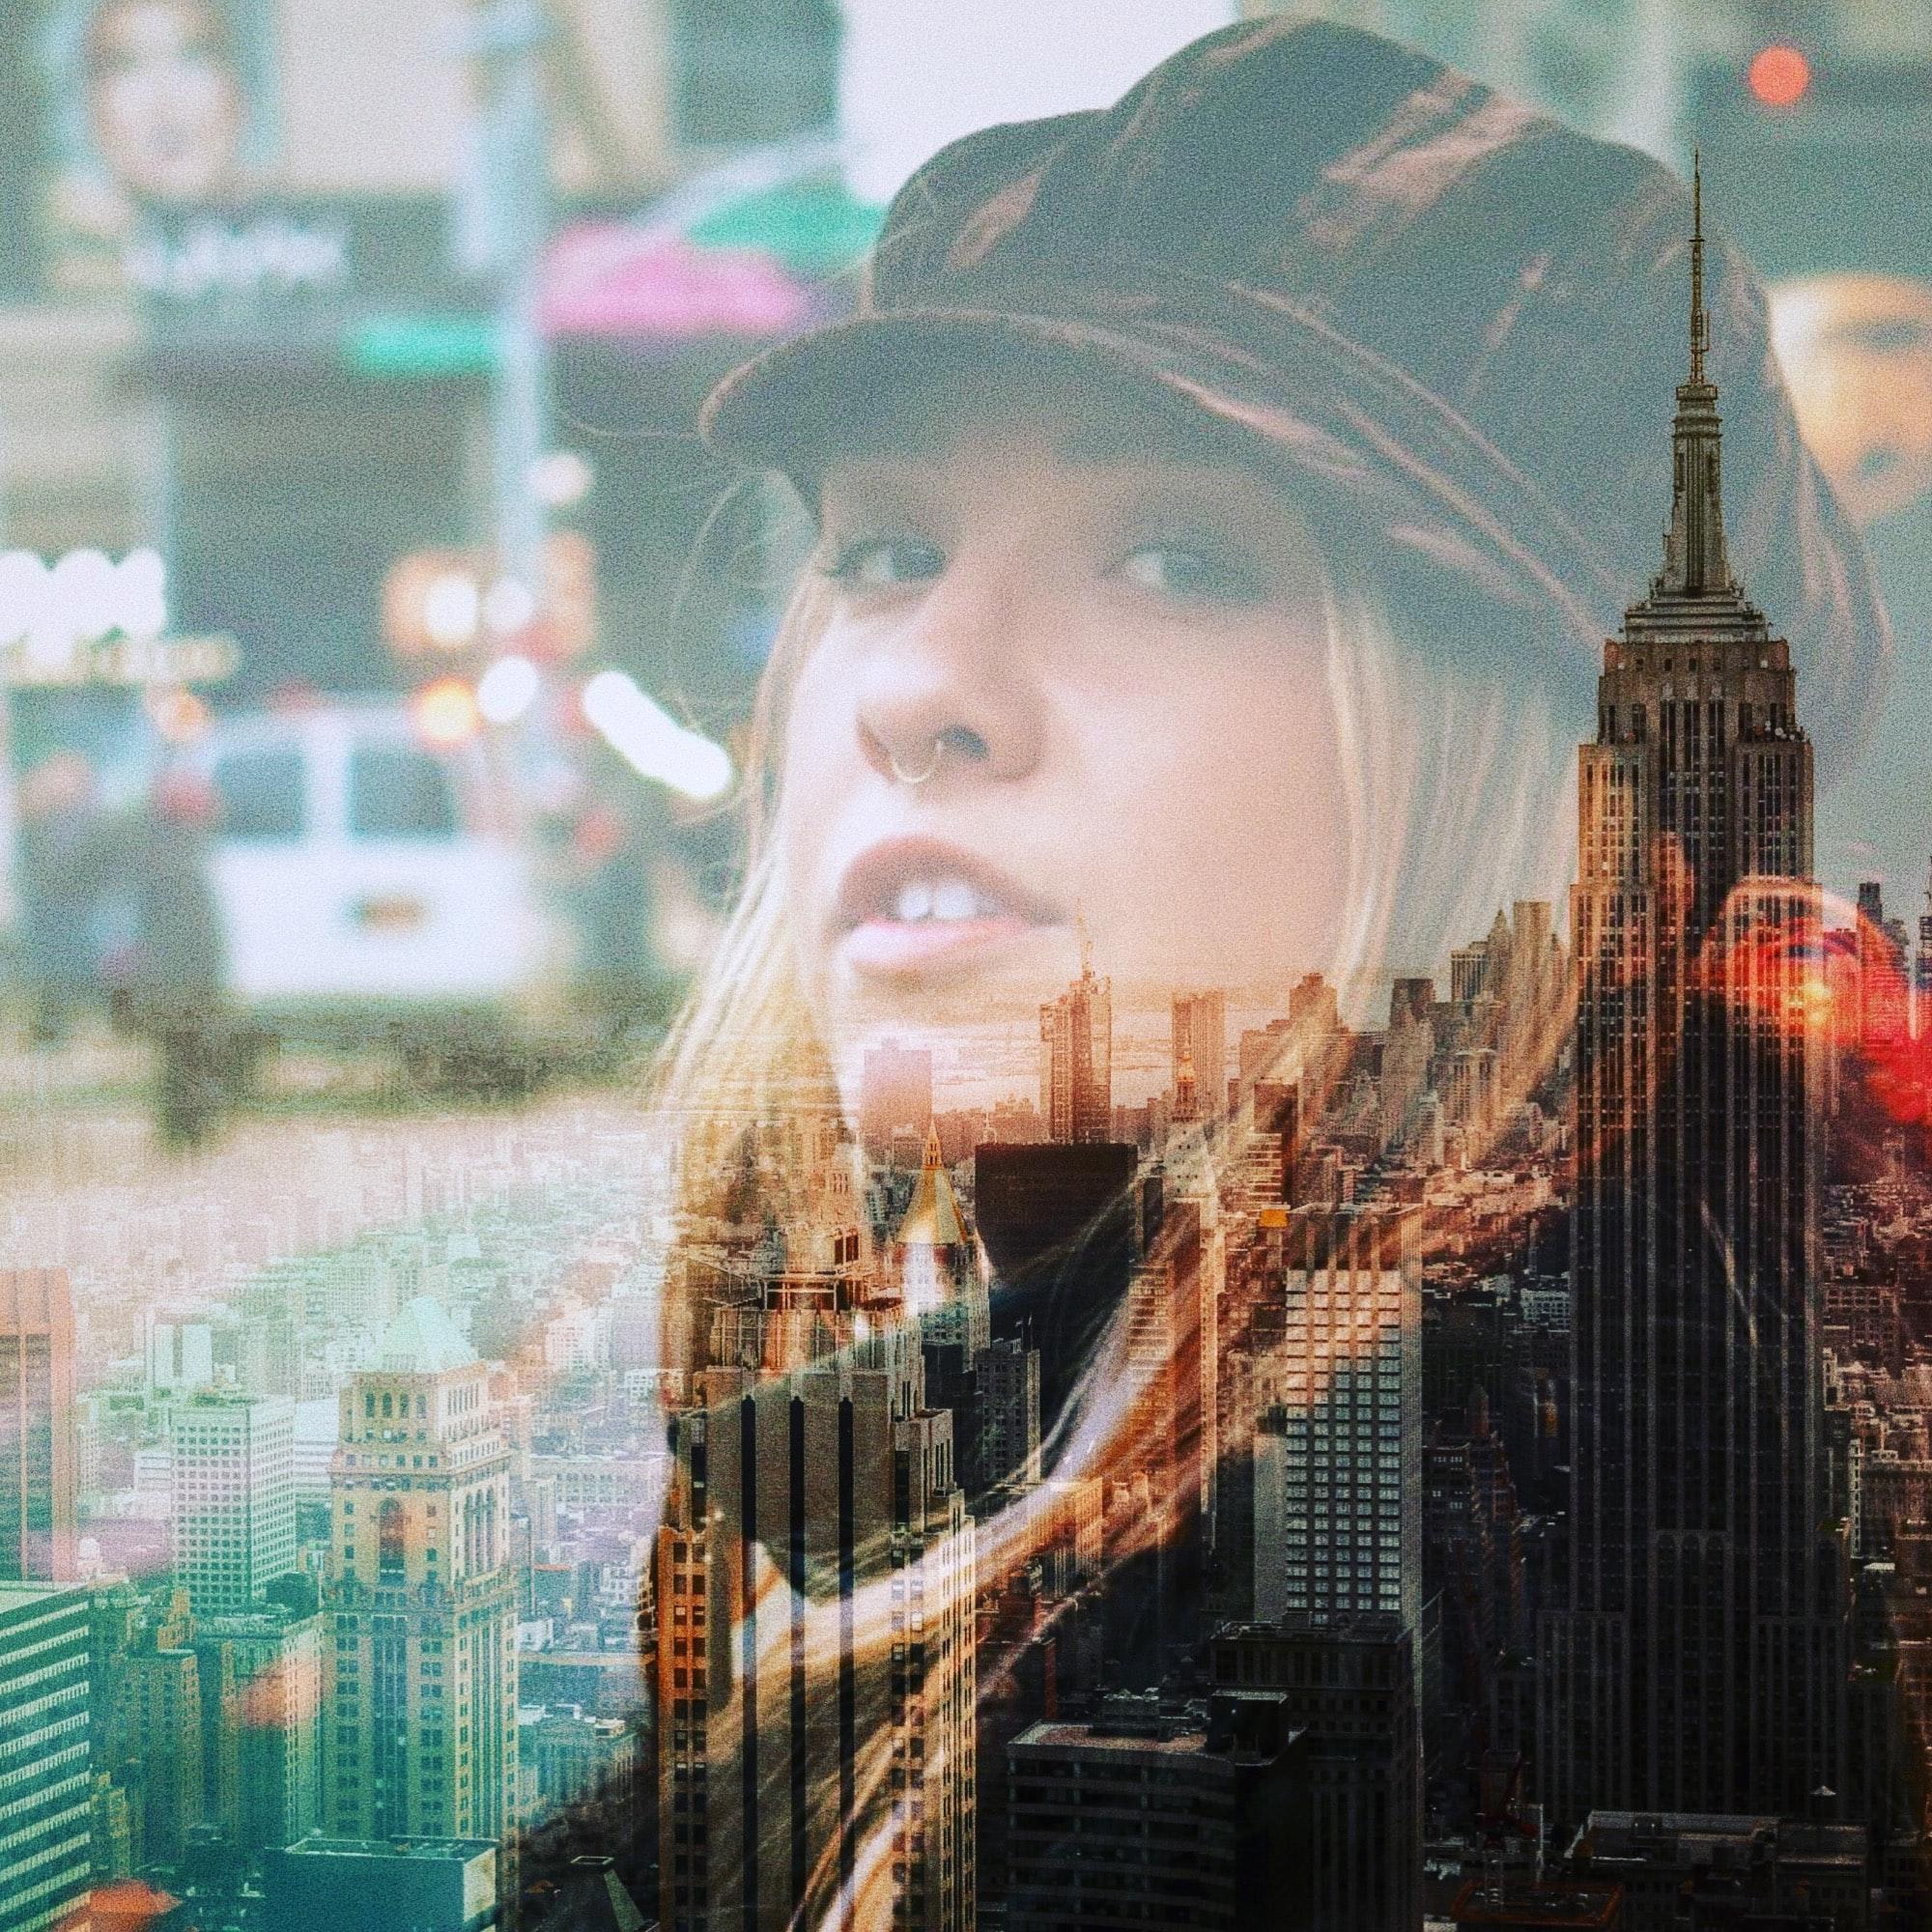 New York City and woman's face overlay